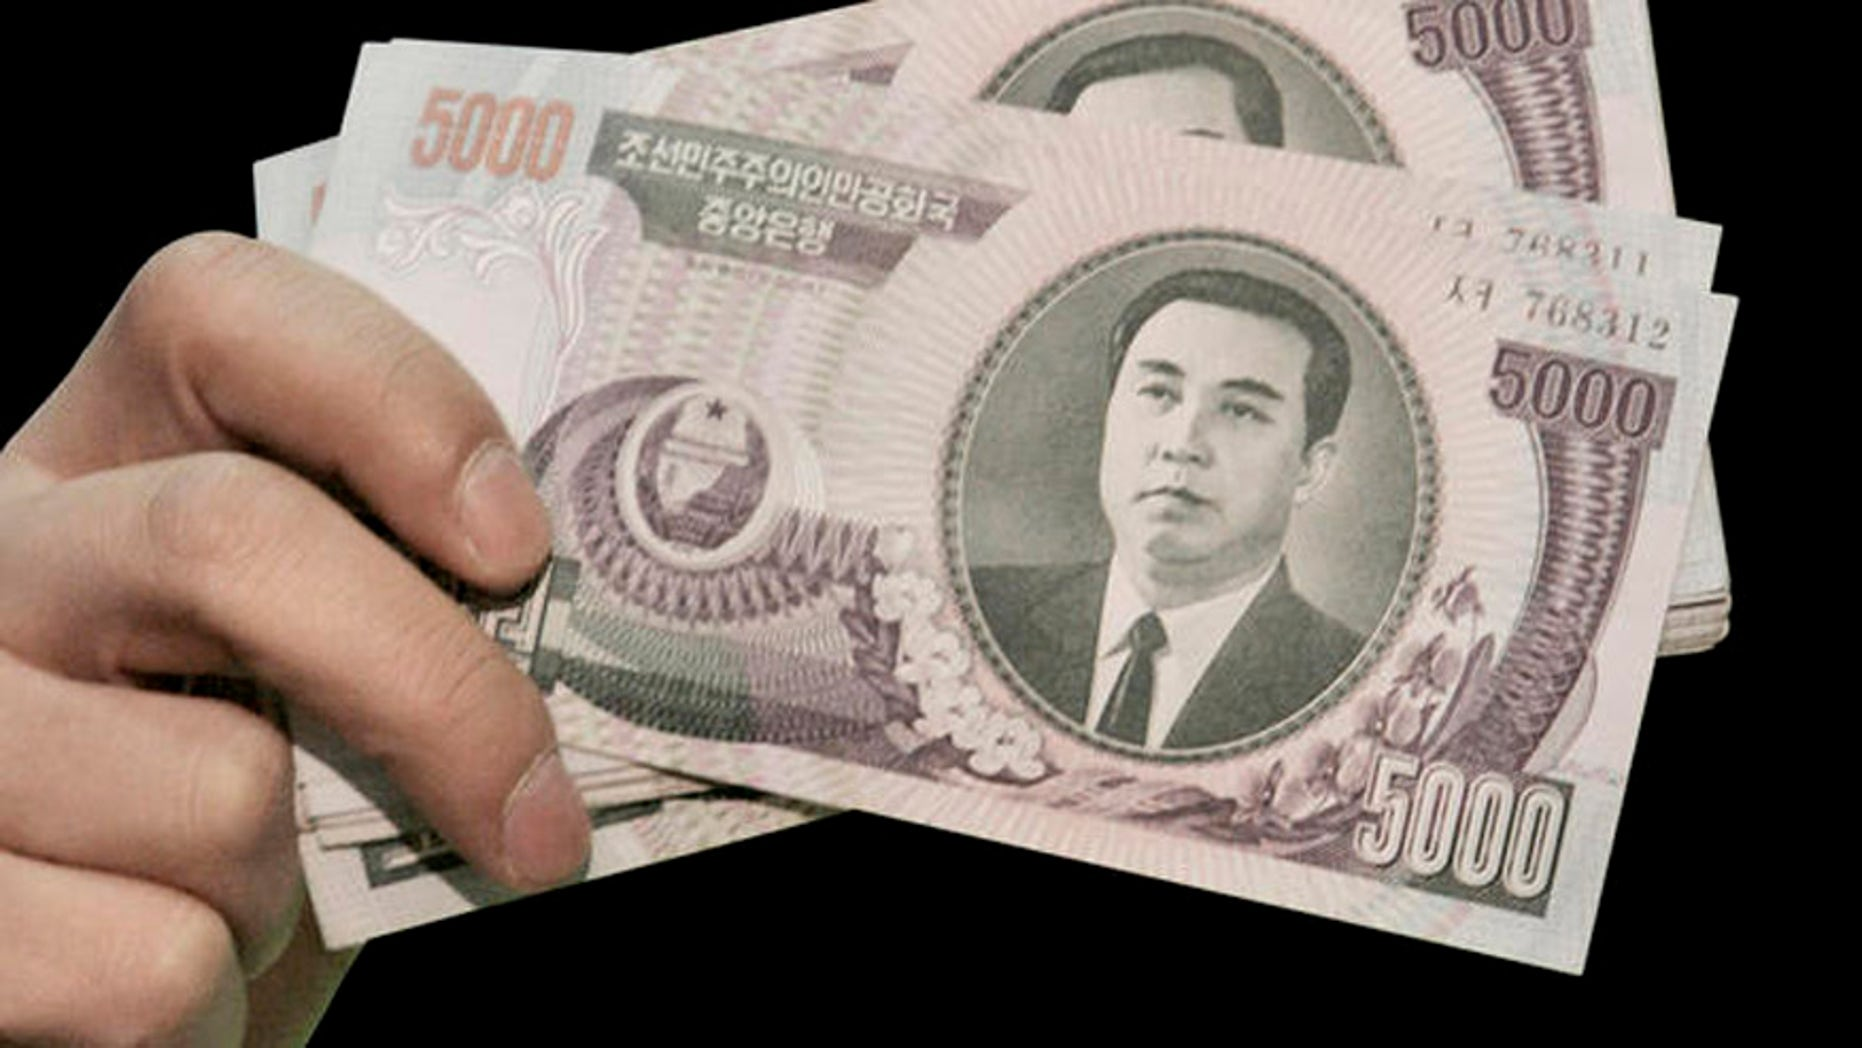 North Korean 5,000 won bank notes.